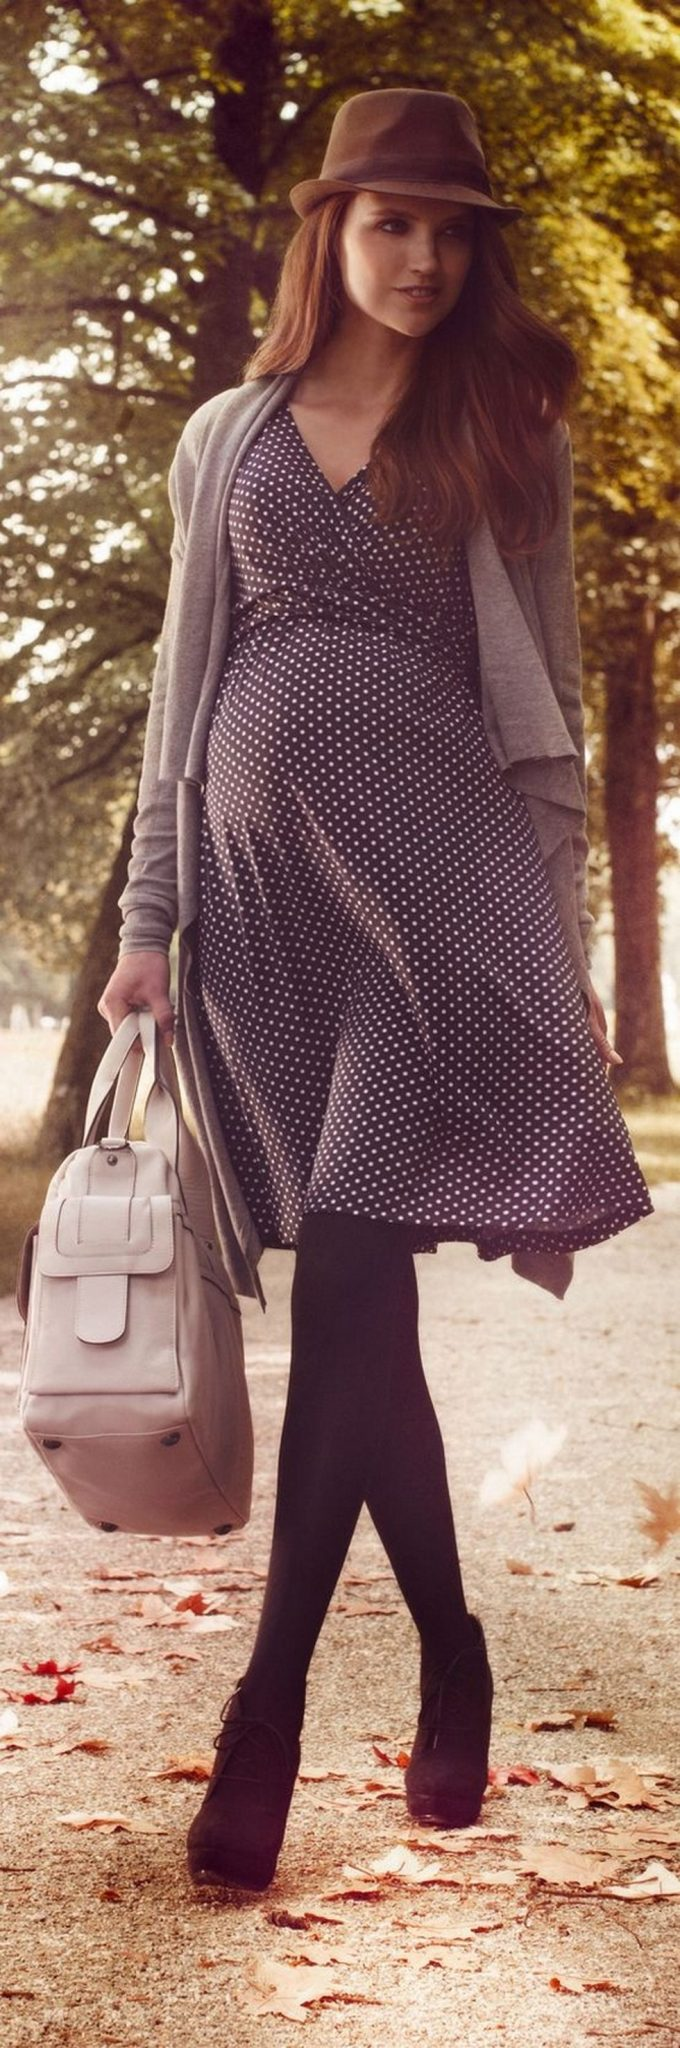 Maternity fashions outfits for fall and winter 3